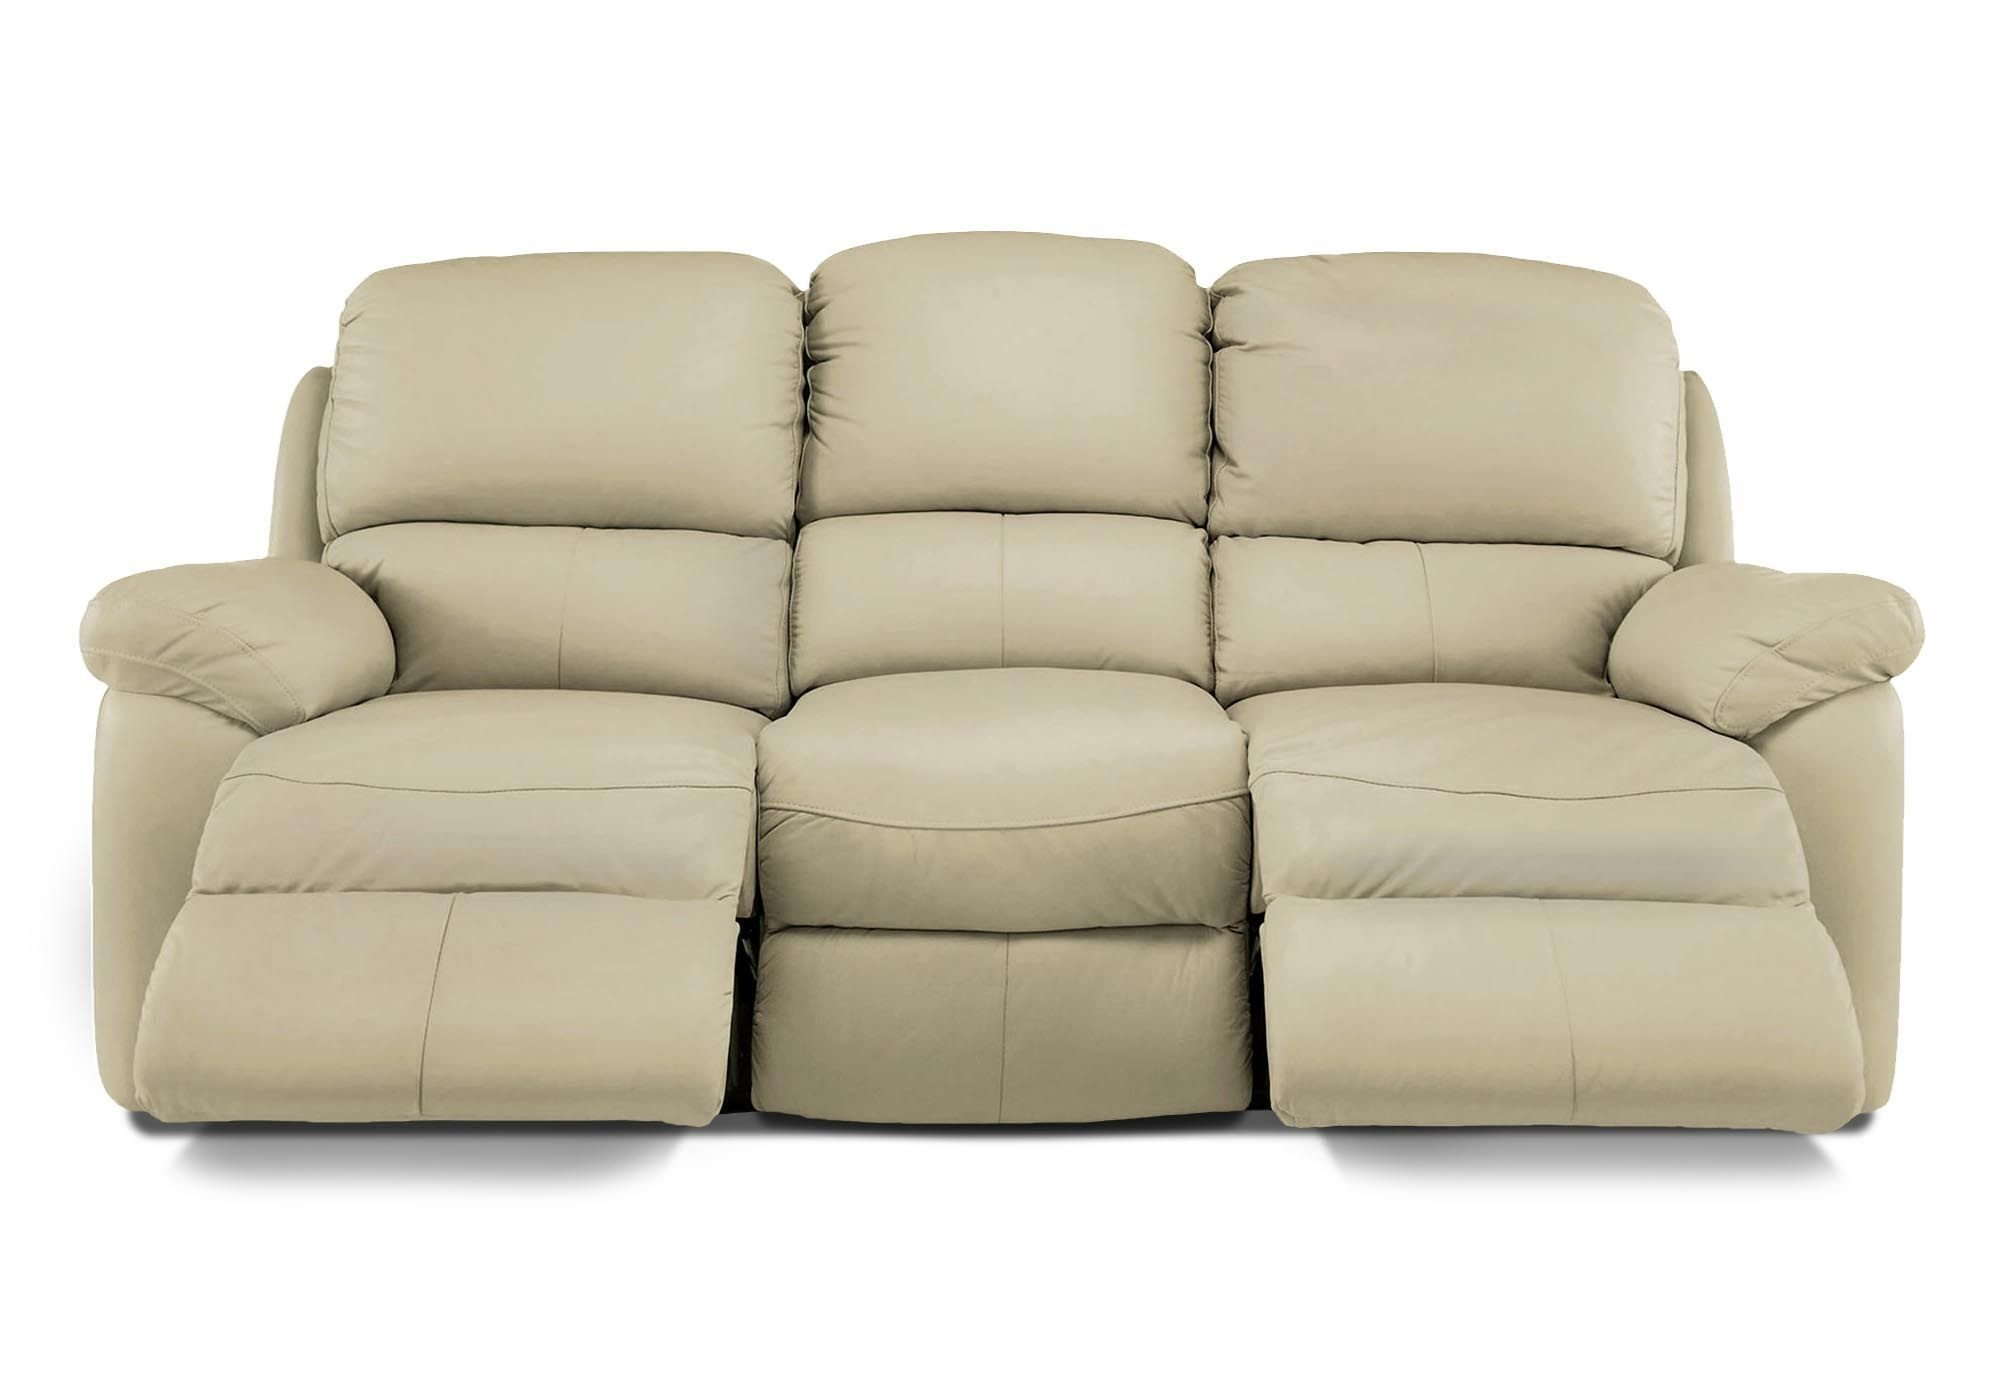 Comfy Lounge Chairs for Bedroom Unique the Leona 3 Seater sofa is Perfect for A Family Home and A